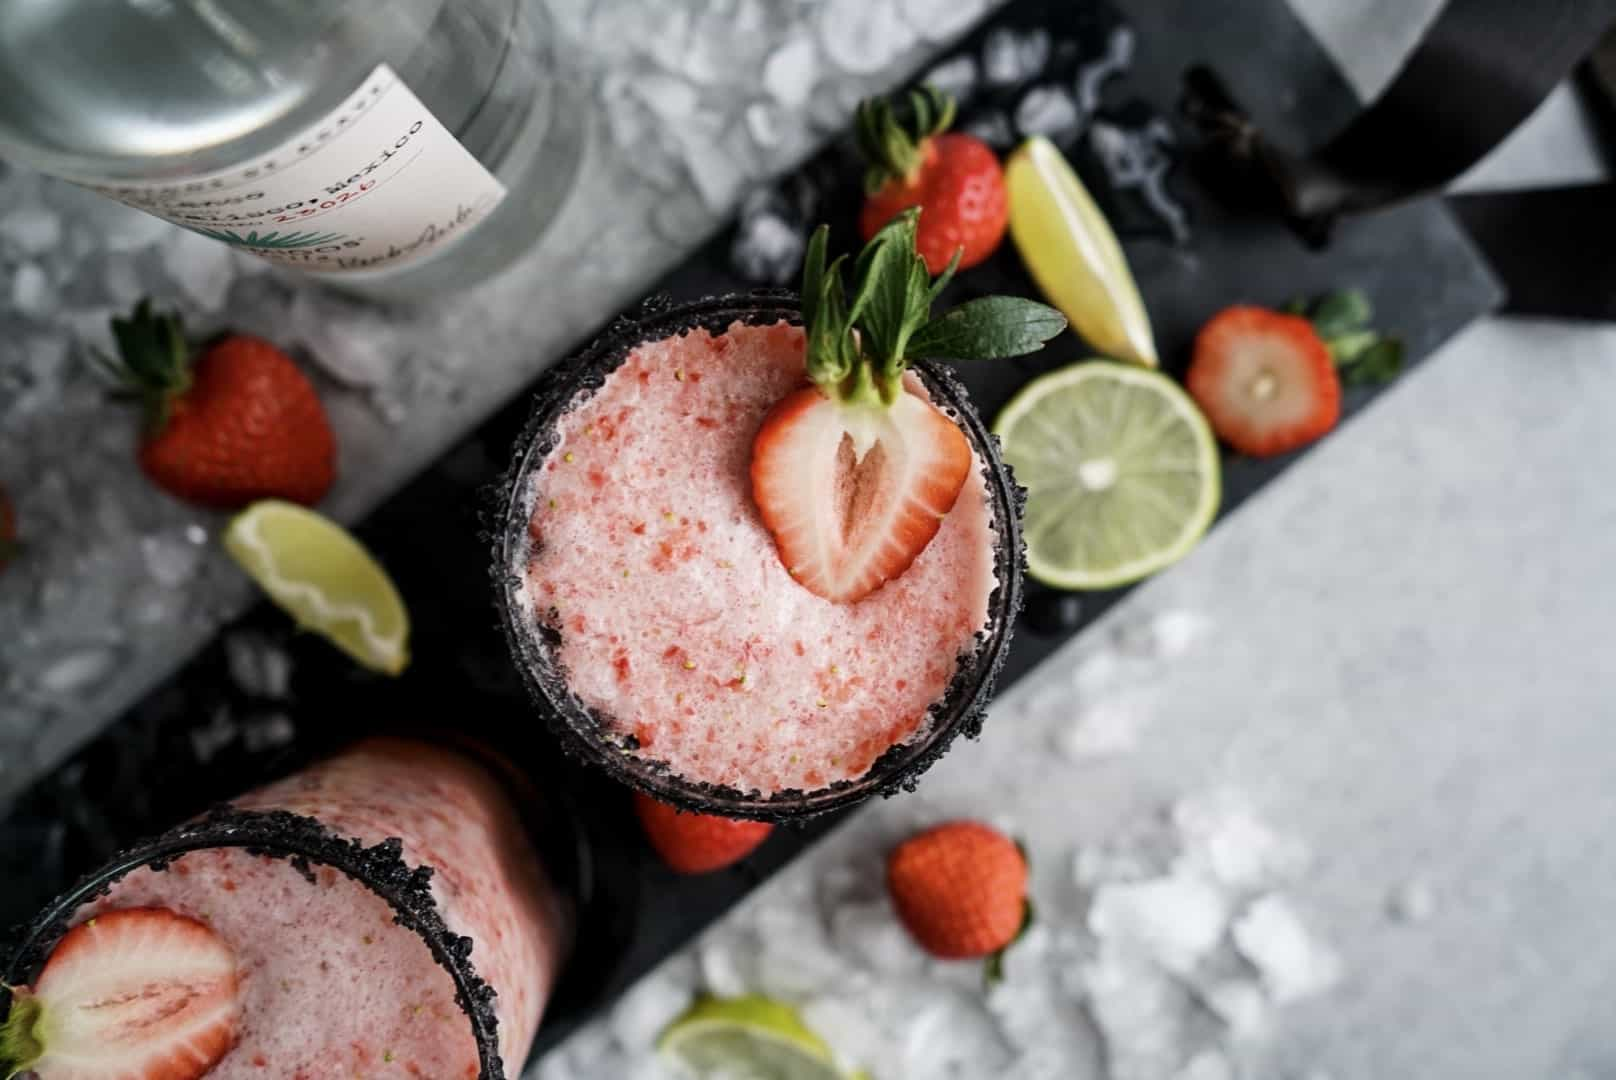 Strawberry Lime Margaritas garnished with salt and fresh strawberries